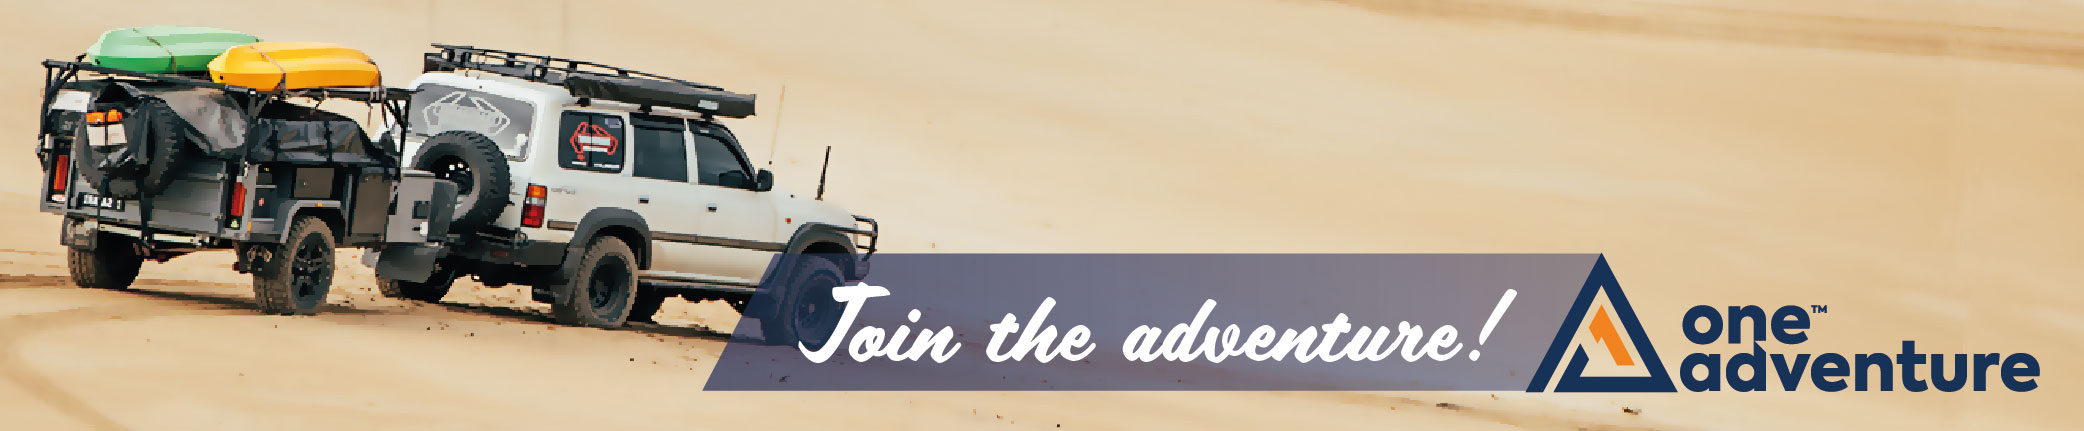 OneAdventure mobile banner